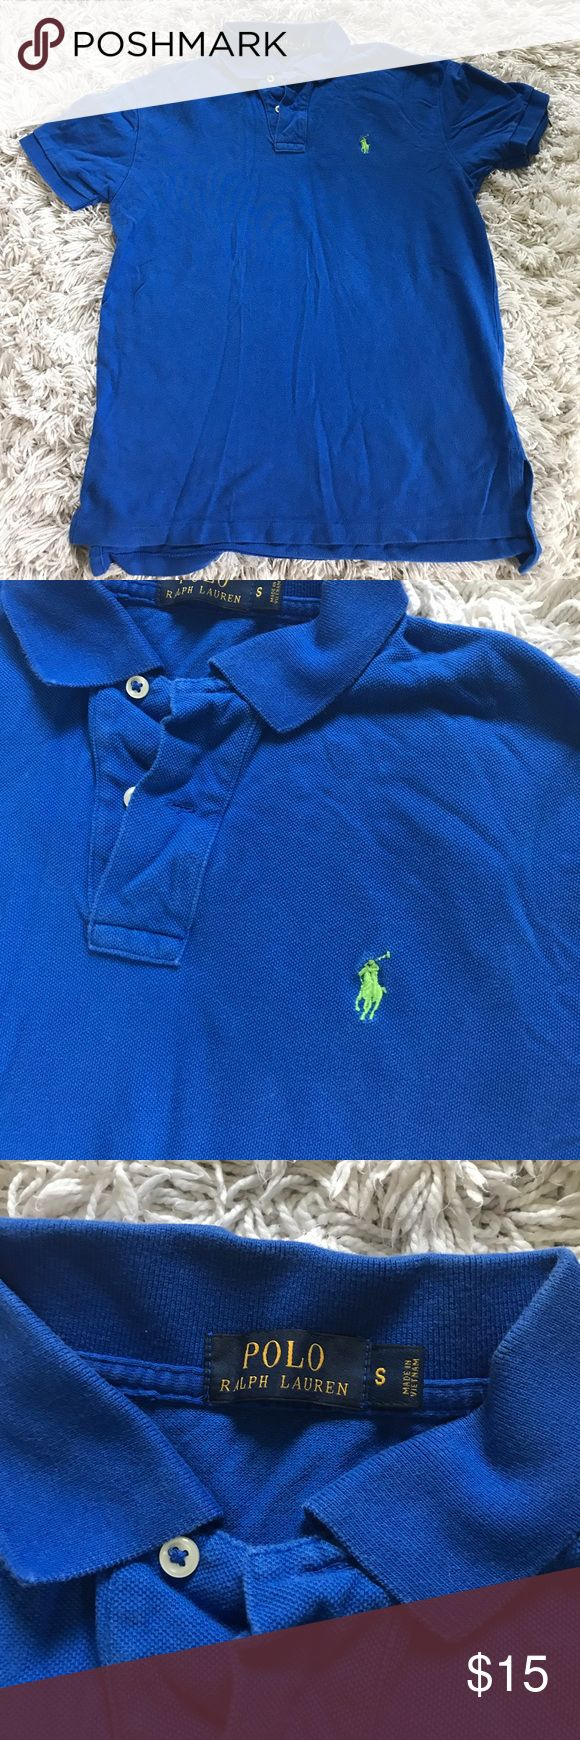 Men's Blue POLO shirt Beautiful blue with green polo logo, excellent condition Polo by Ralph Lauren Shirts Polos